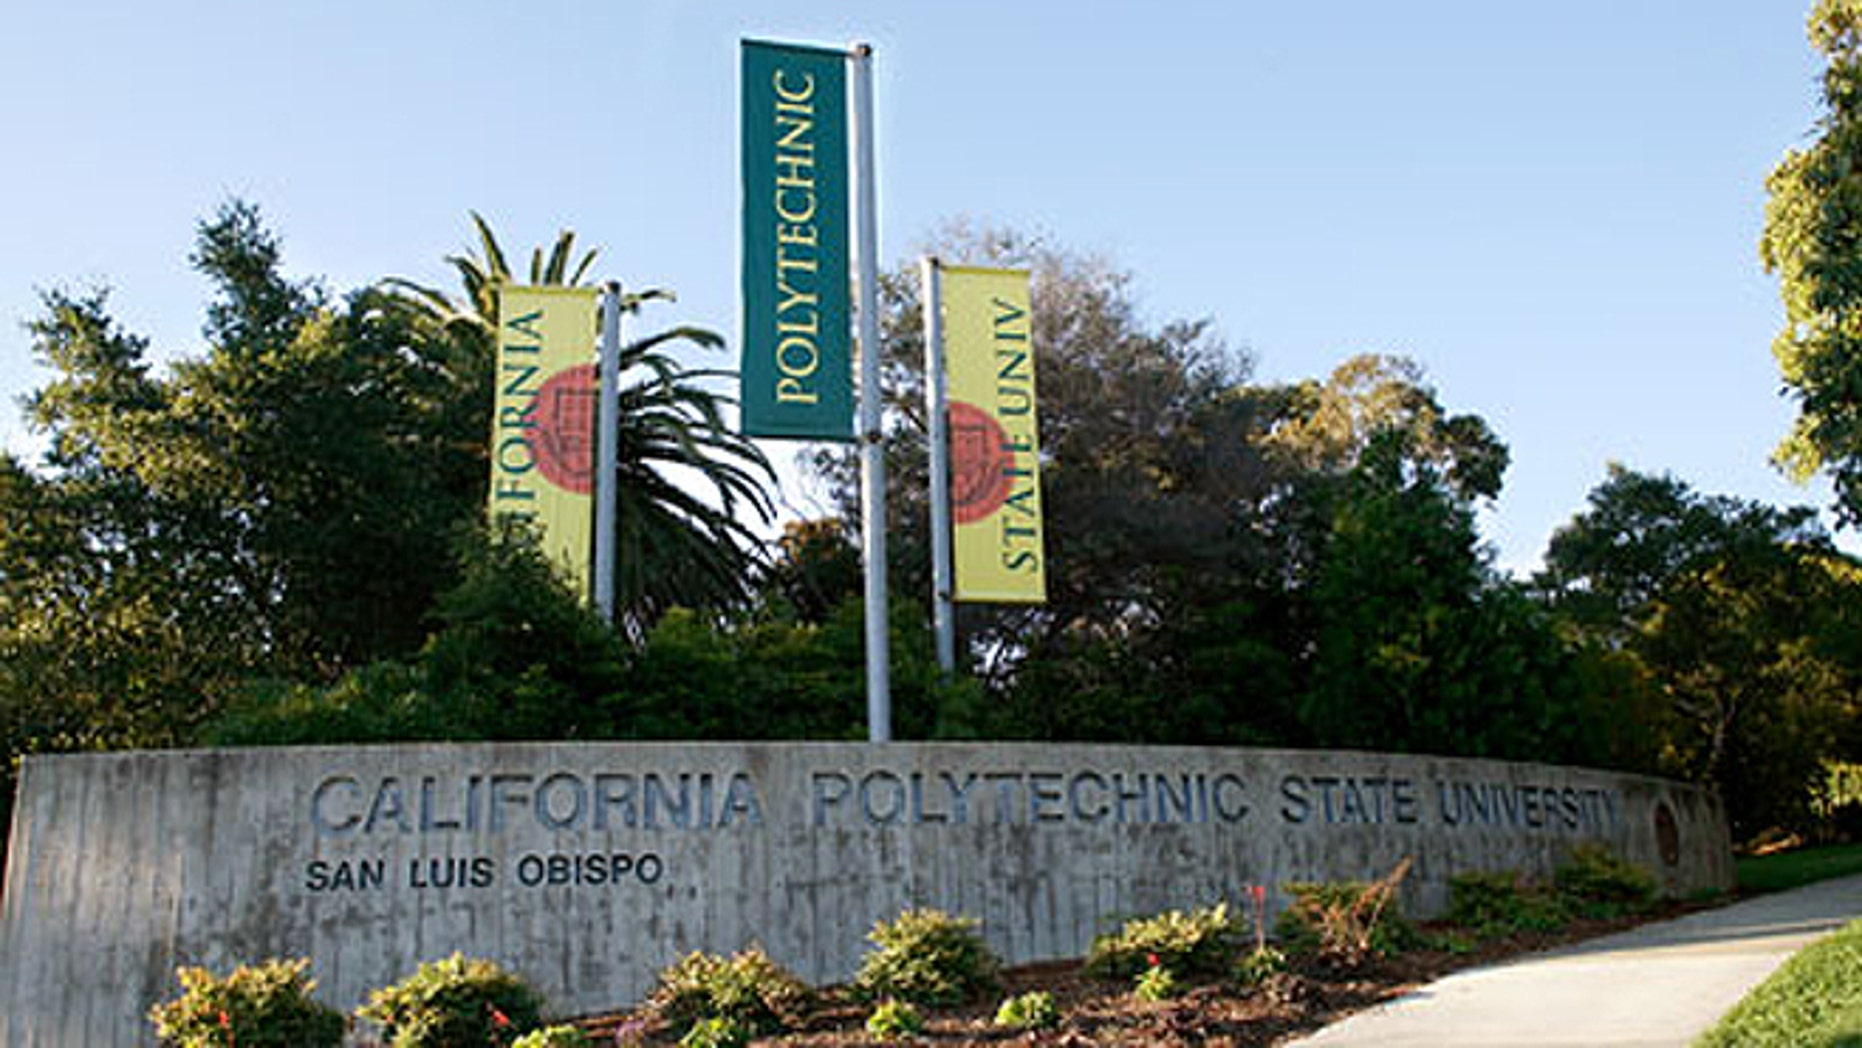 Members of the university's Associated Students, Inc., formerly known as the Elections Committee, met Friday to discuss next steps regarding the alleged violations. ASI spokeswoman Michelle Broom said the fines have since been suspended until staffers consult with legal counsel pertaining to the inconsistencies in the code. (CalPoly.edu)